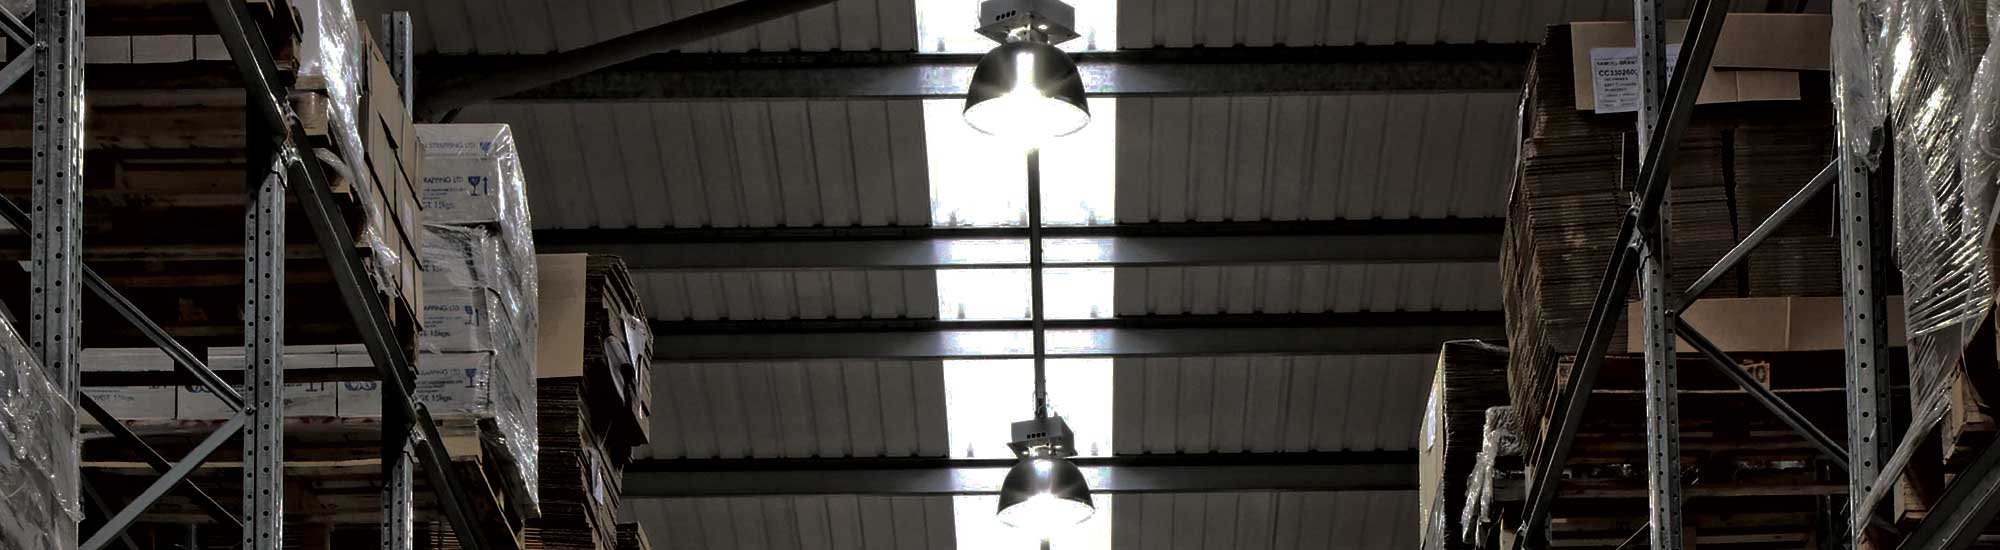 Efficient Solutions From Venture Lighting Europe